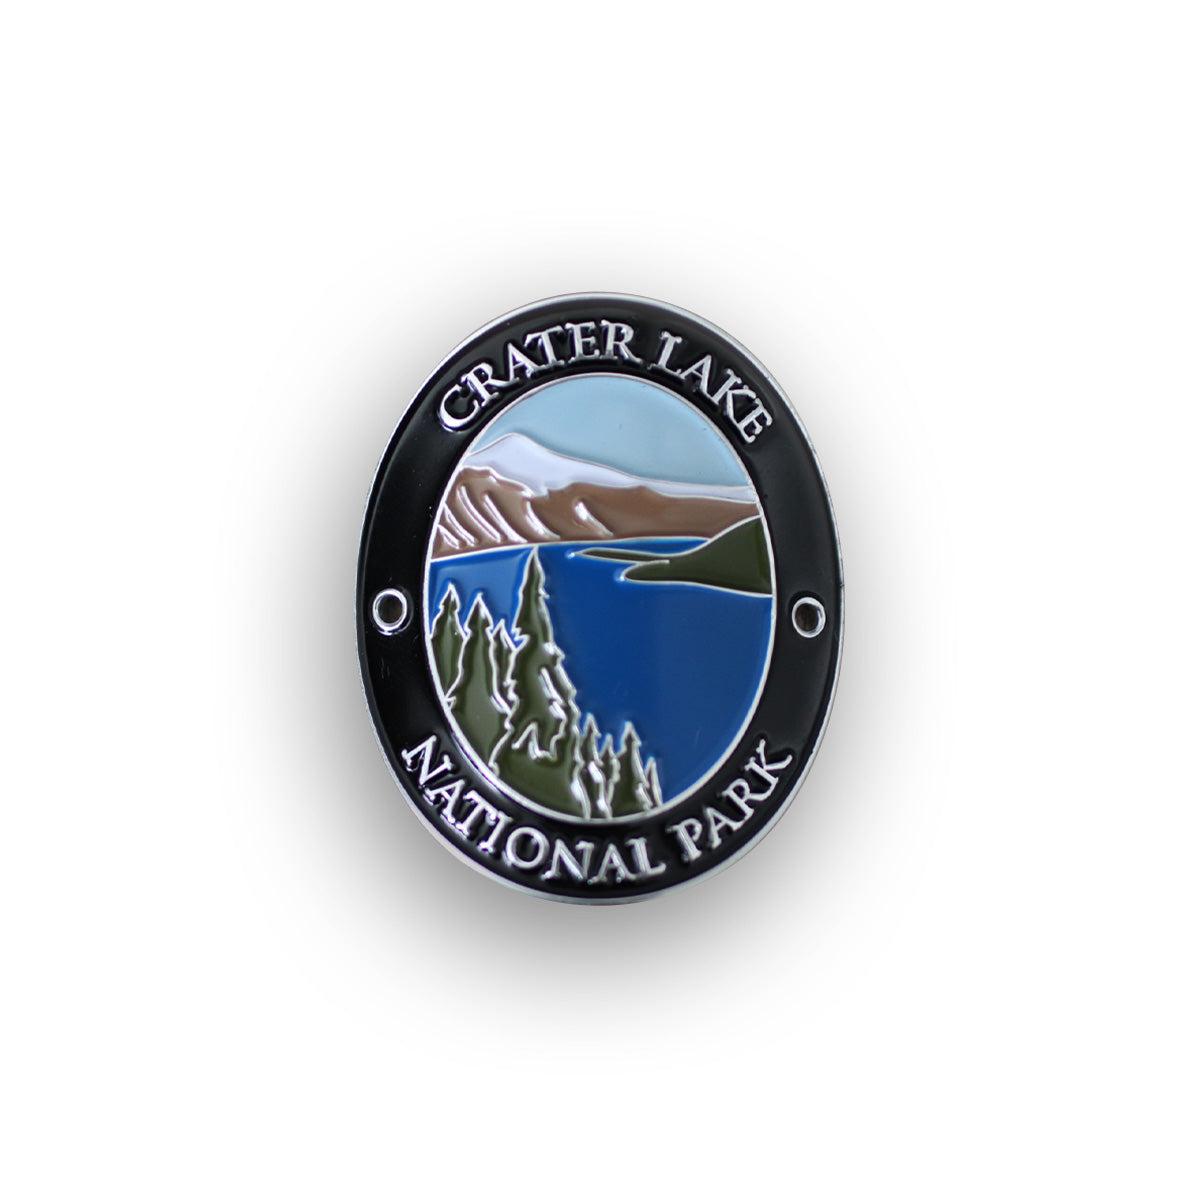 Crater Lake National Park Traveler Walking Stick Medallion